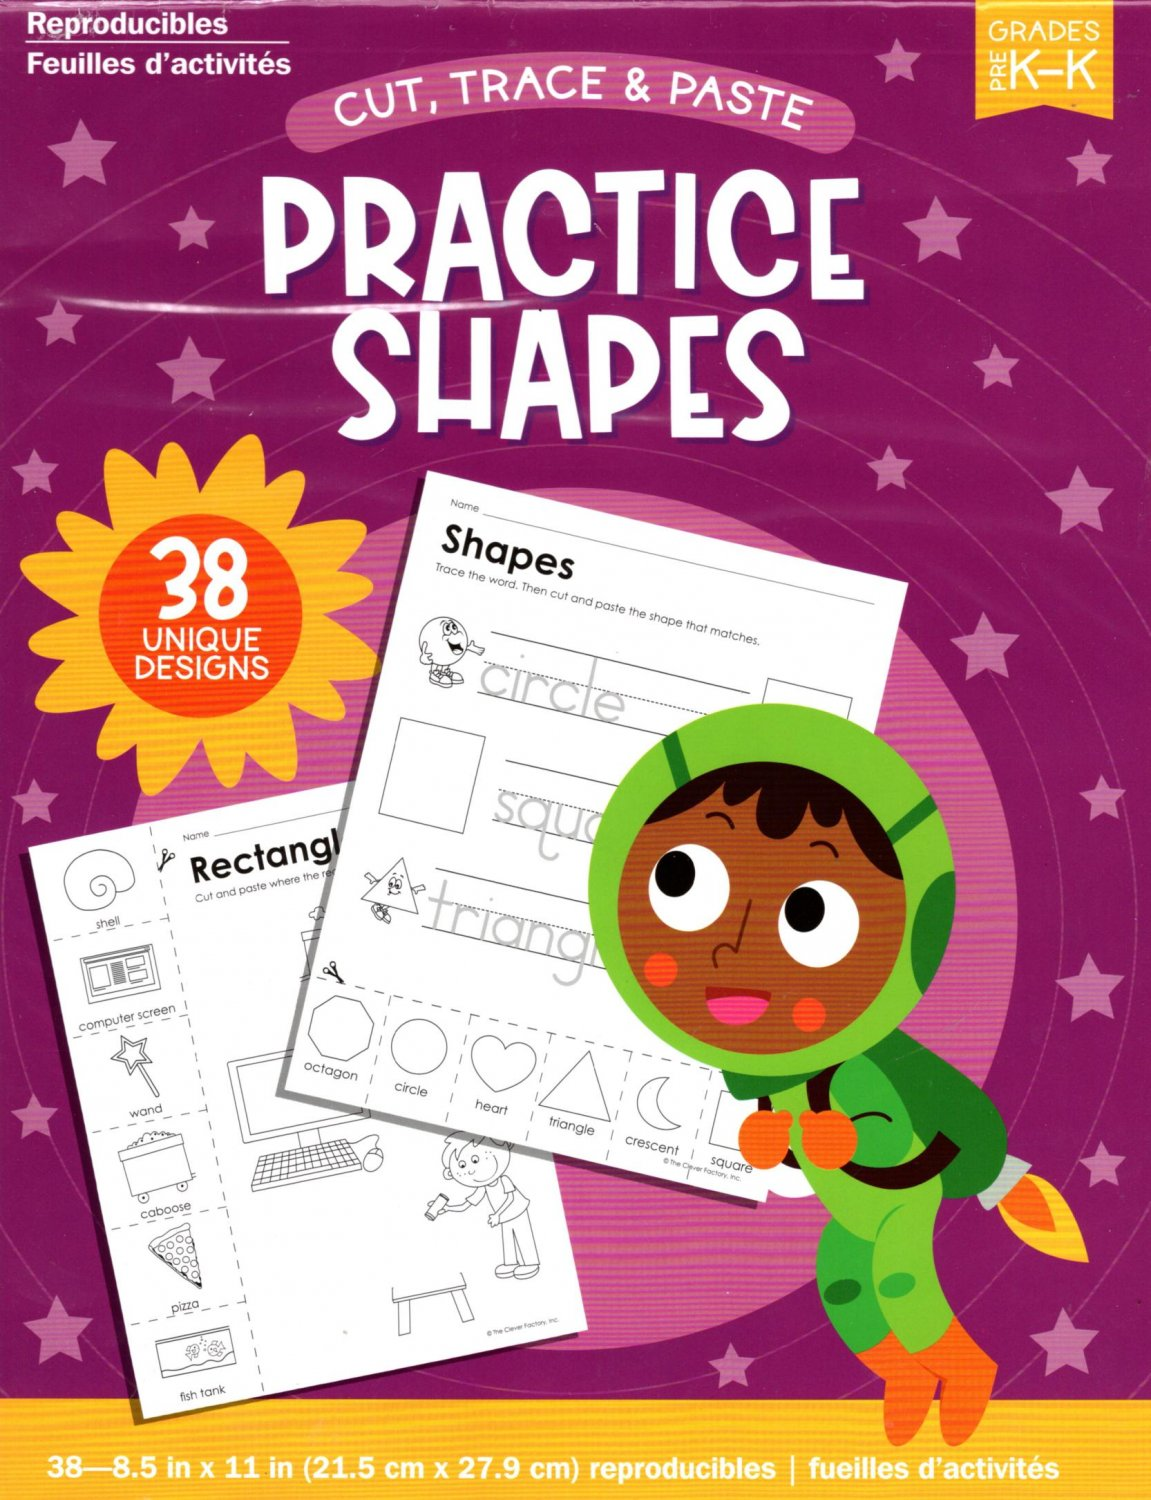 Cut, Trace, and Paste Practice Shapes - Reproducible Educational Workbook - Grades Pre-K - K v2